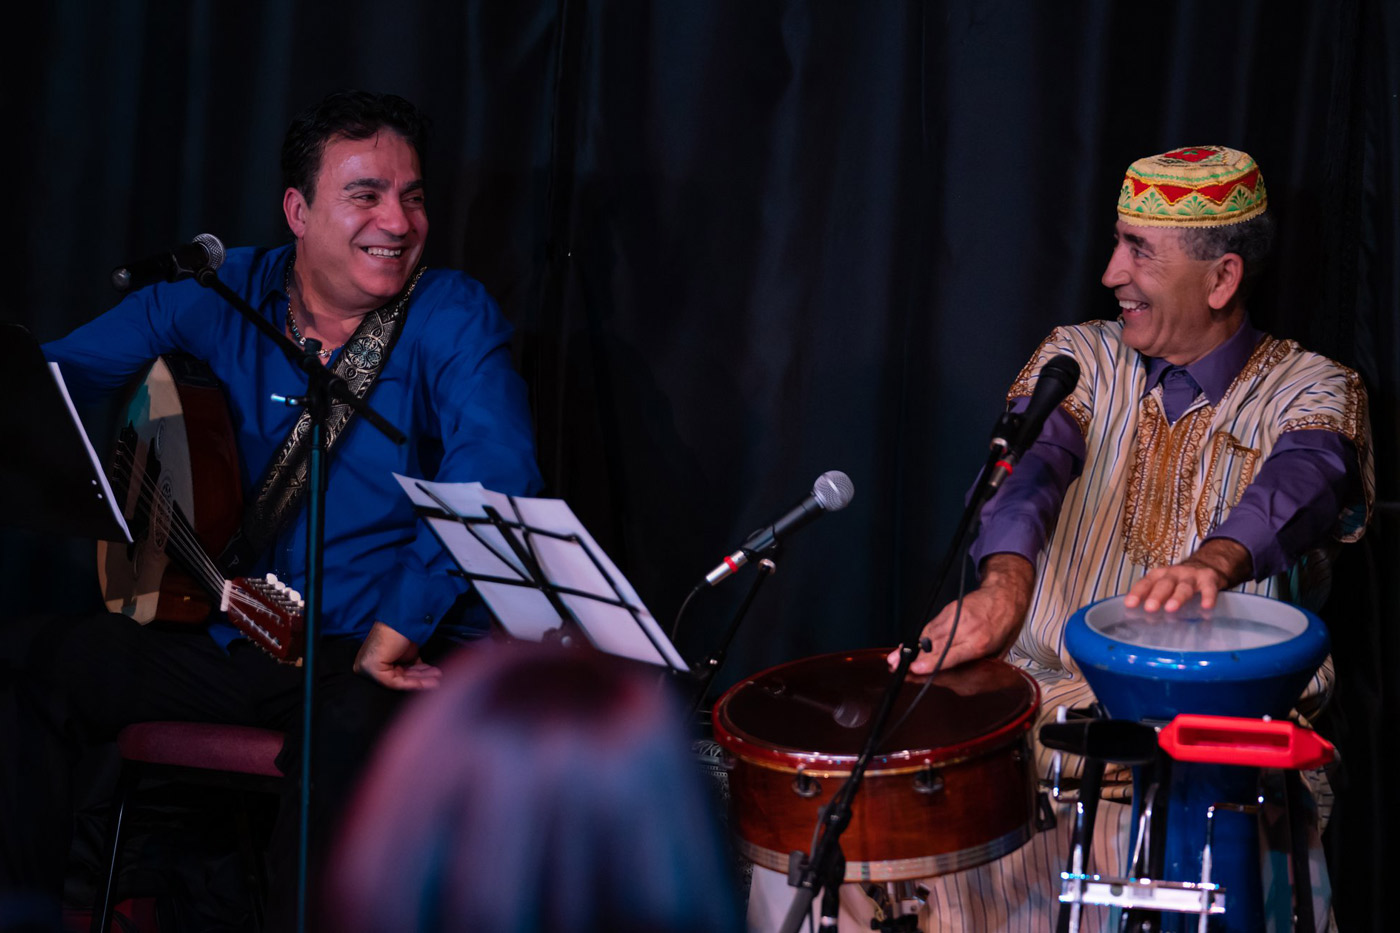 george maalouf performing on stage with drummer